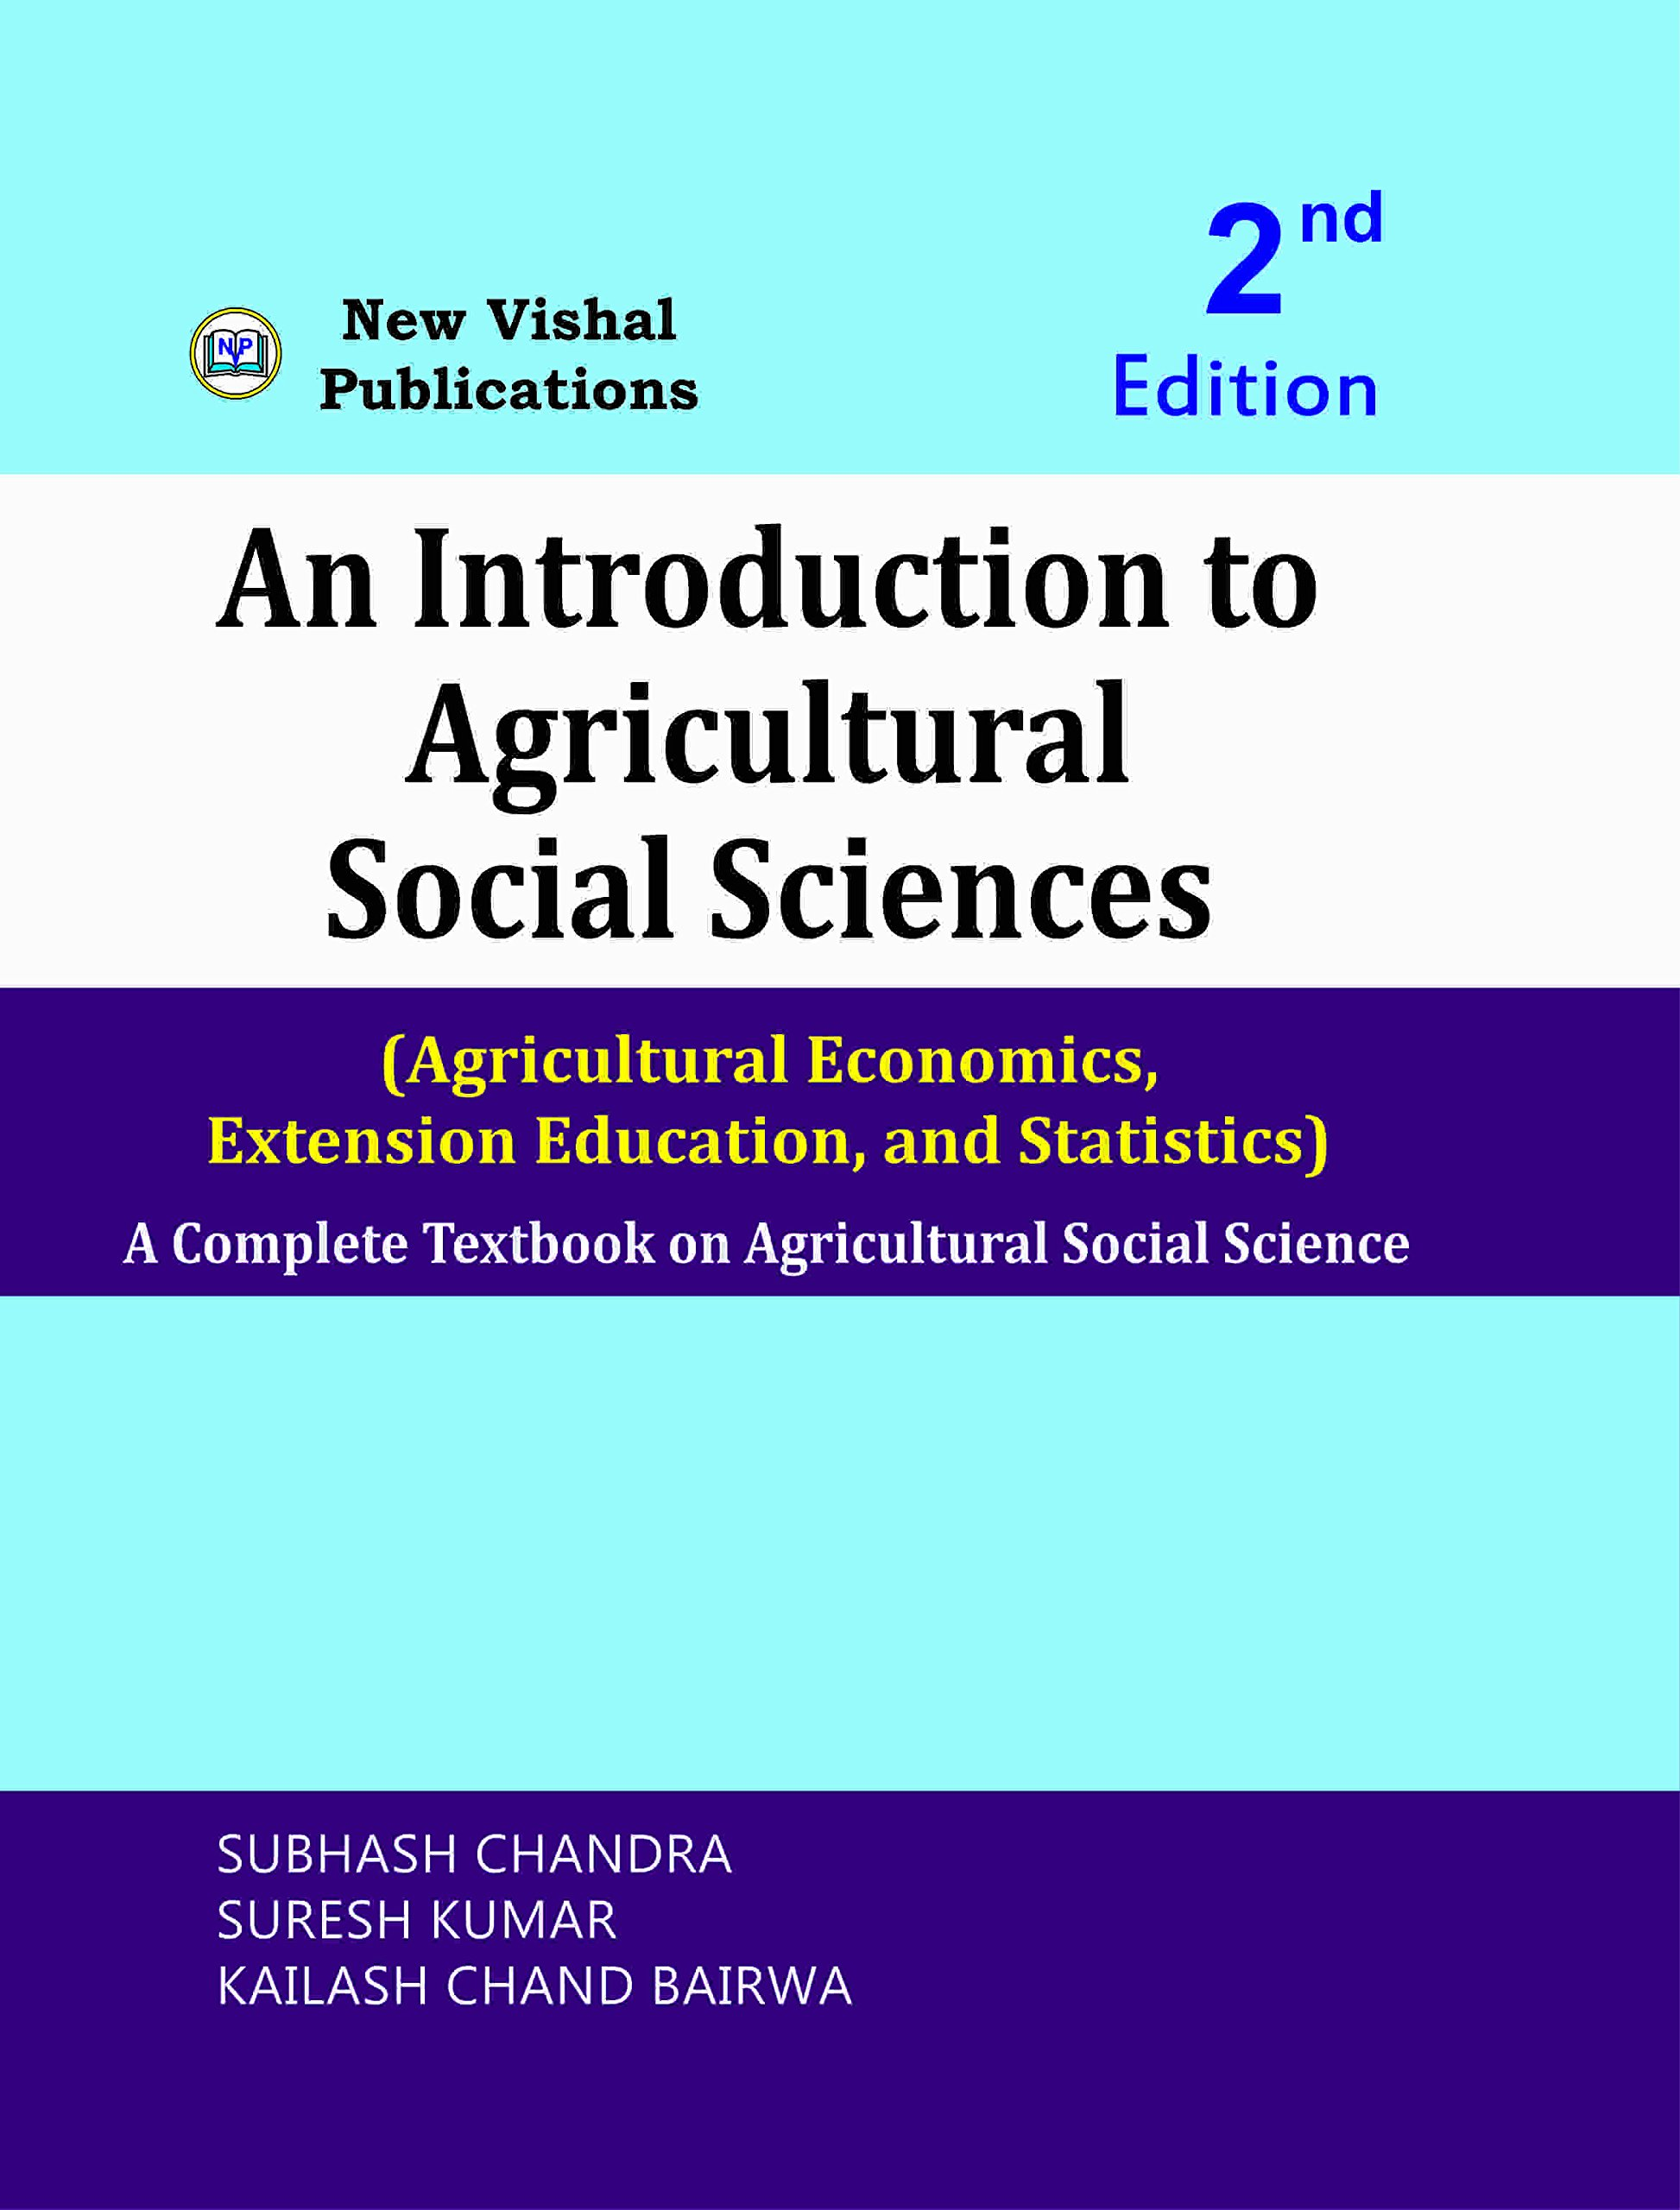 An Introduction to Agricultural Social Sciences